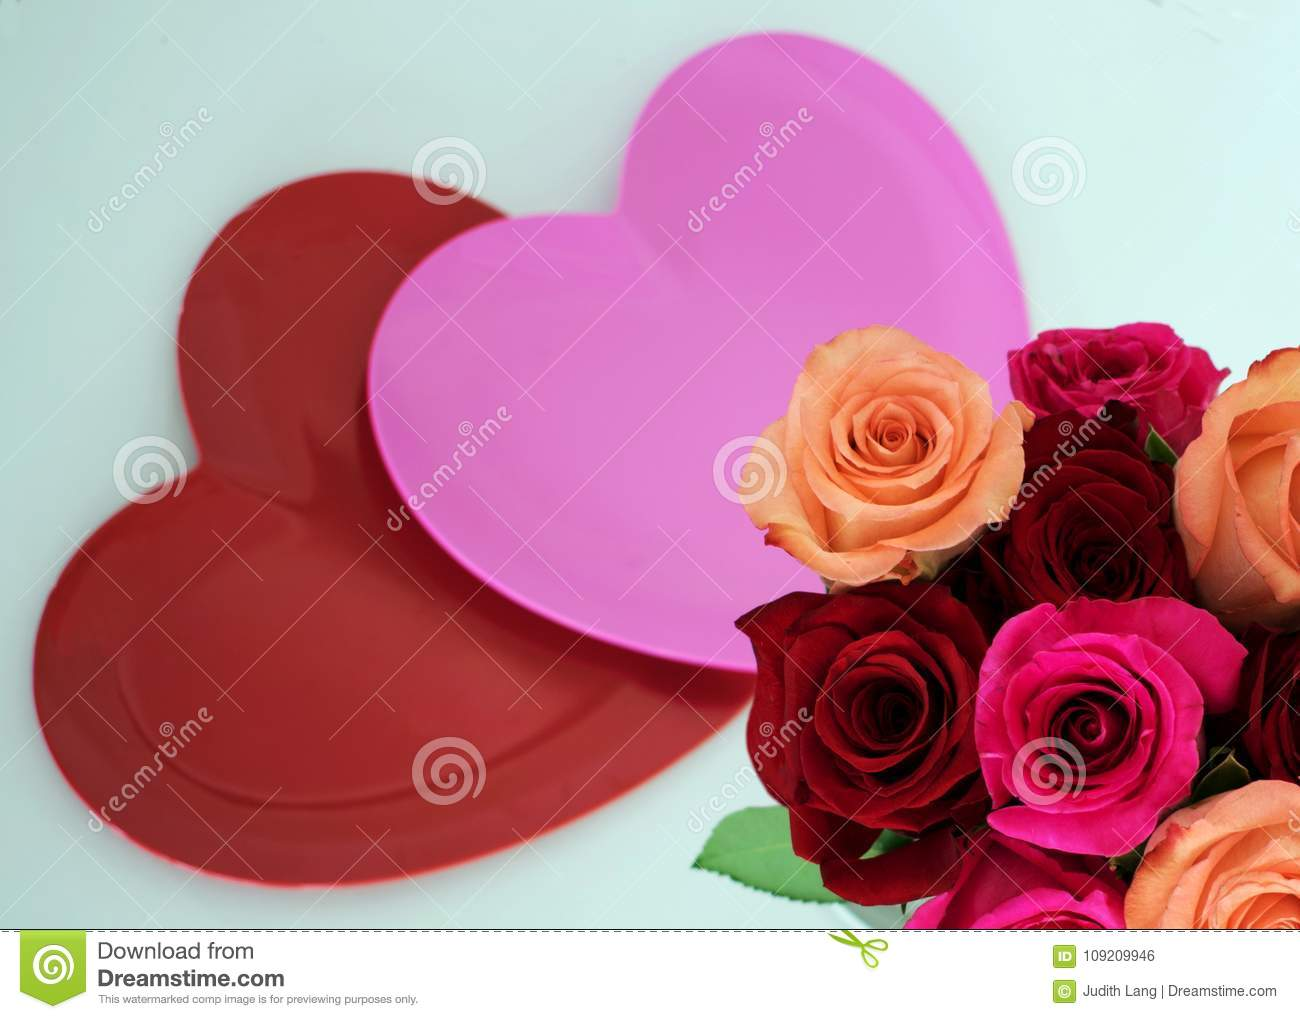 One pink and one red heart with roses in lower right